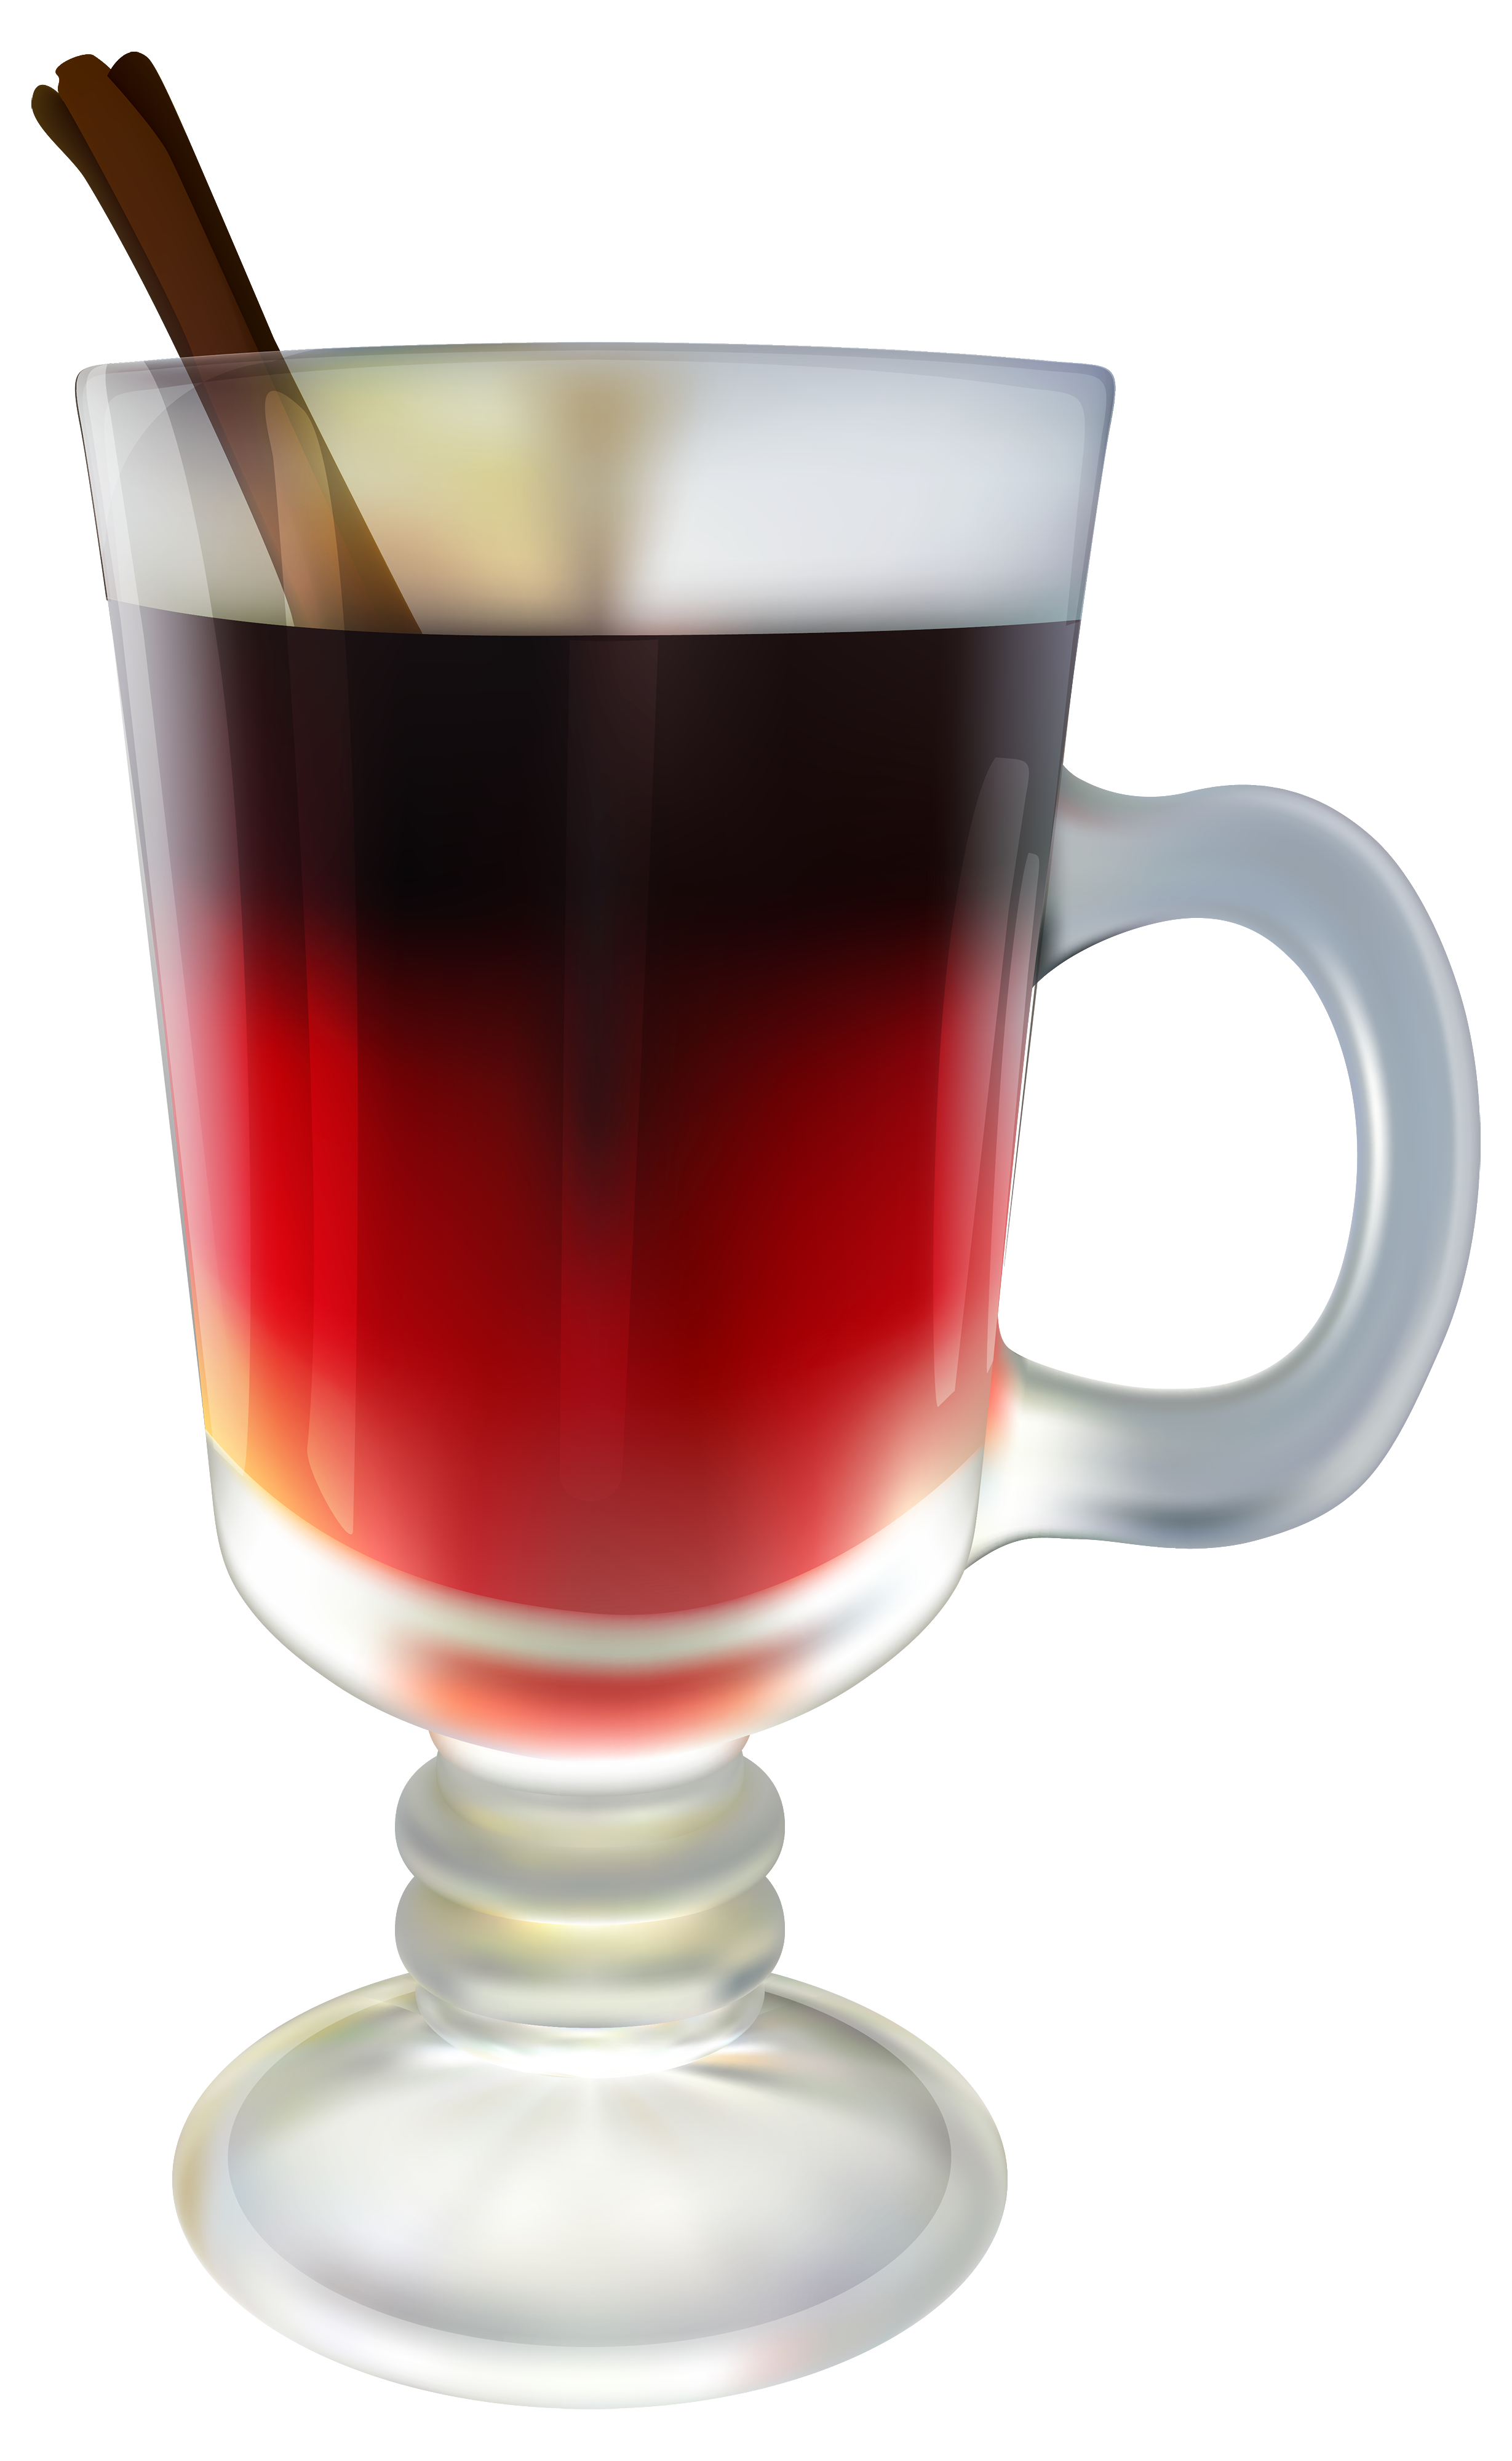 Drinks clipart red drink. Hot tea png best